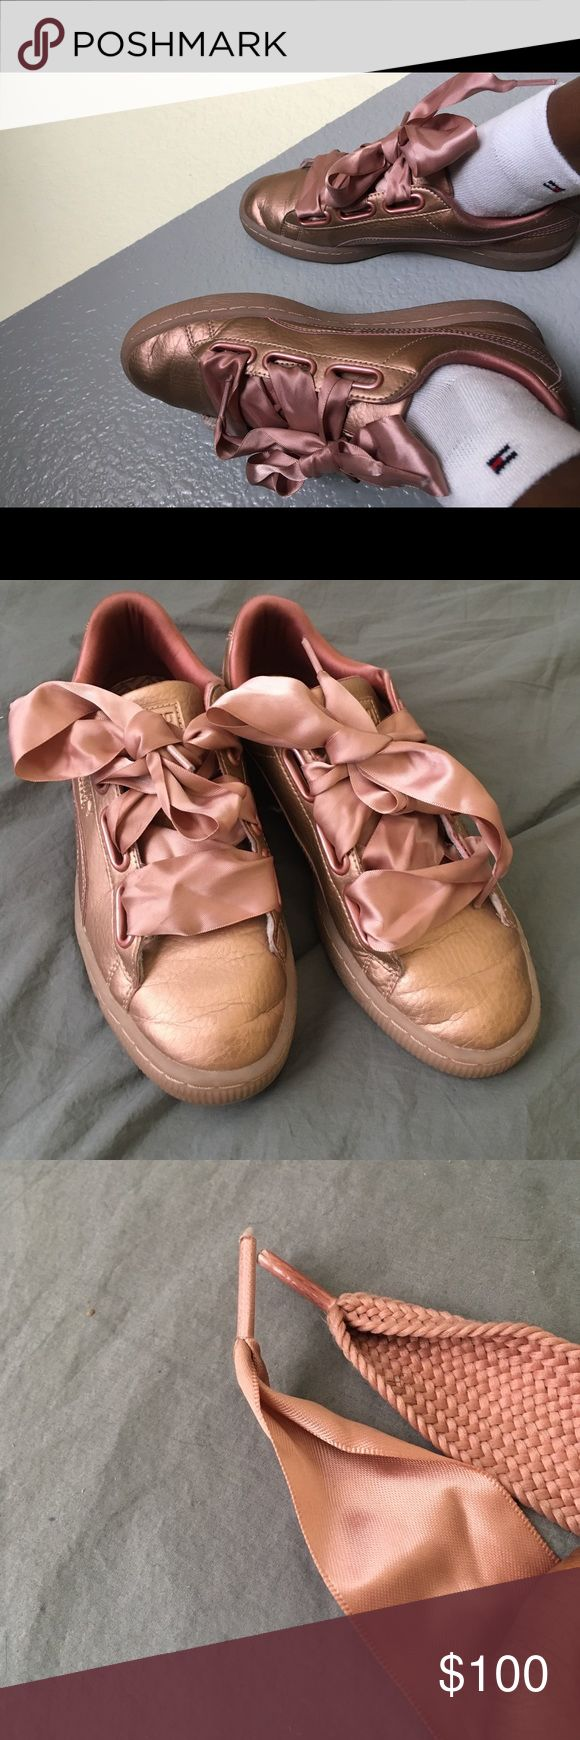 Puma shoes Puma metallic pink size 7.5 AMAZING CONDITION. so comfortable and cute. Ready to ship only wore twice and I got lots of compliments. The original price is 100 dollars.  Comment if you want a cheaper price or if you want to trade. Puma Shoes Sneakers